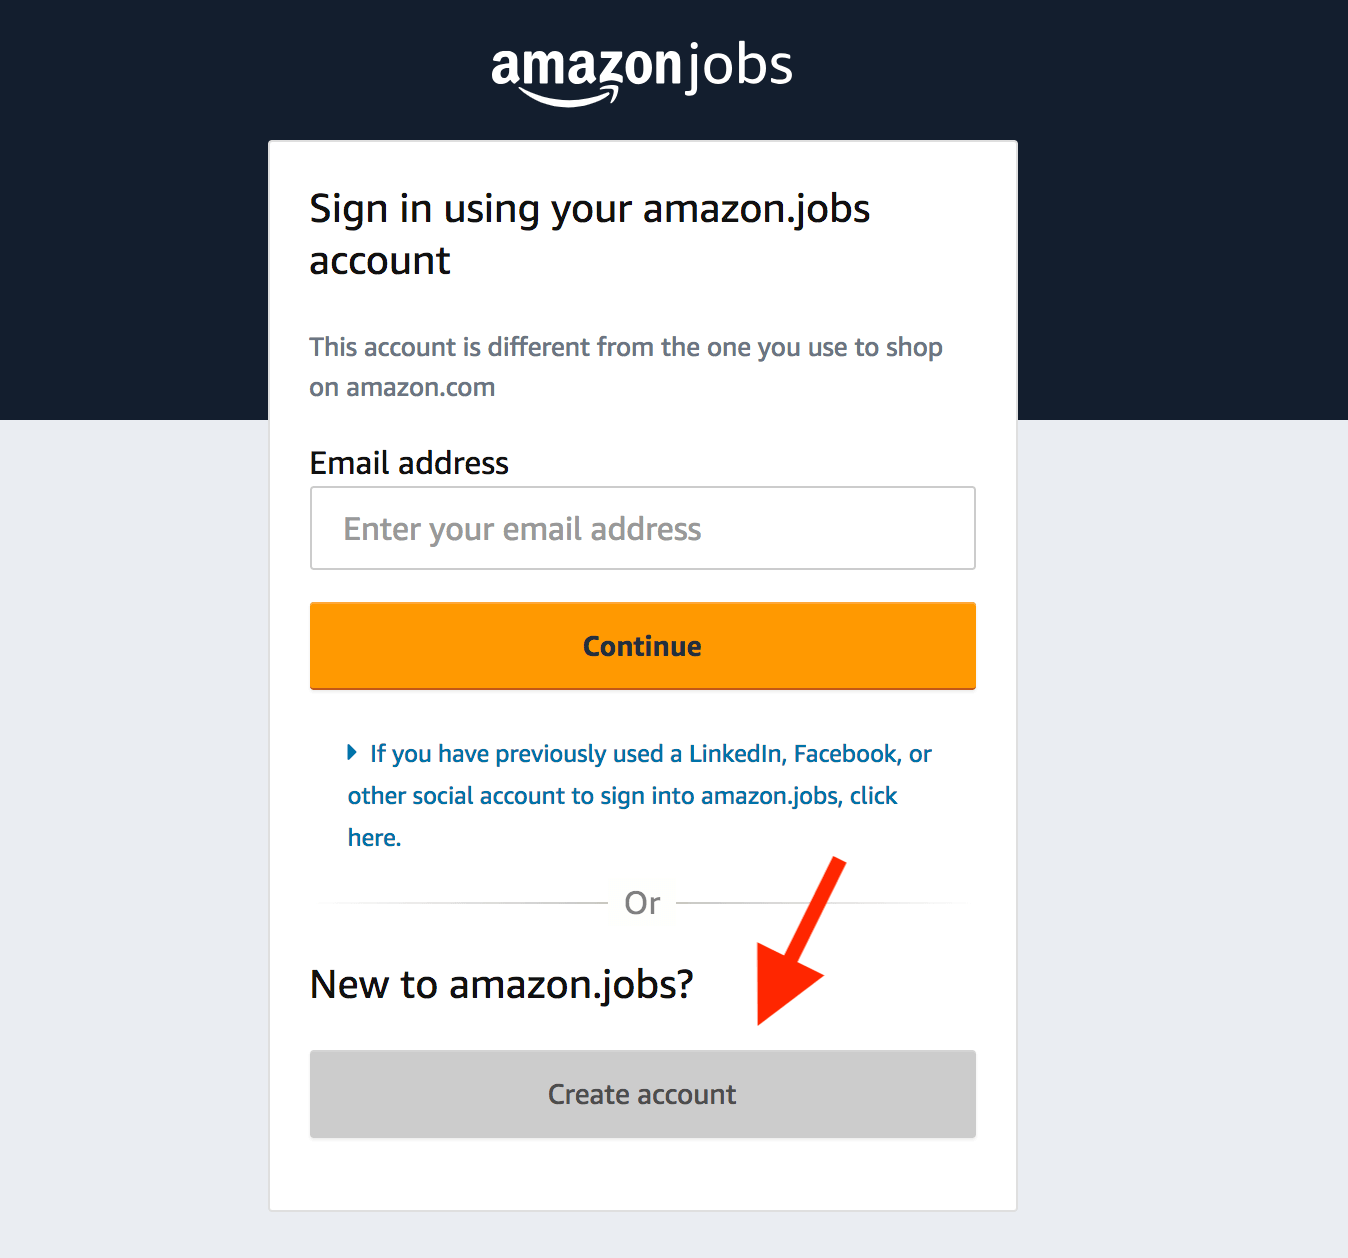 Amazon Work From Home: Create account